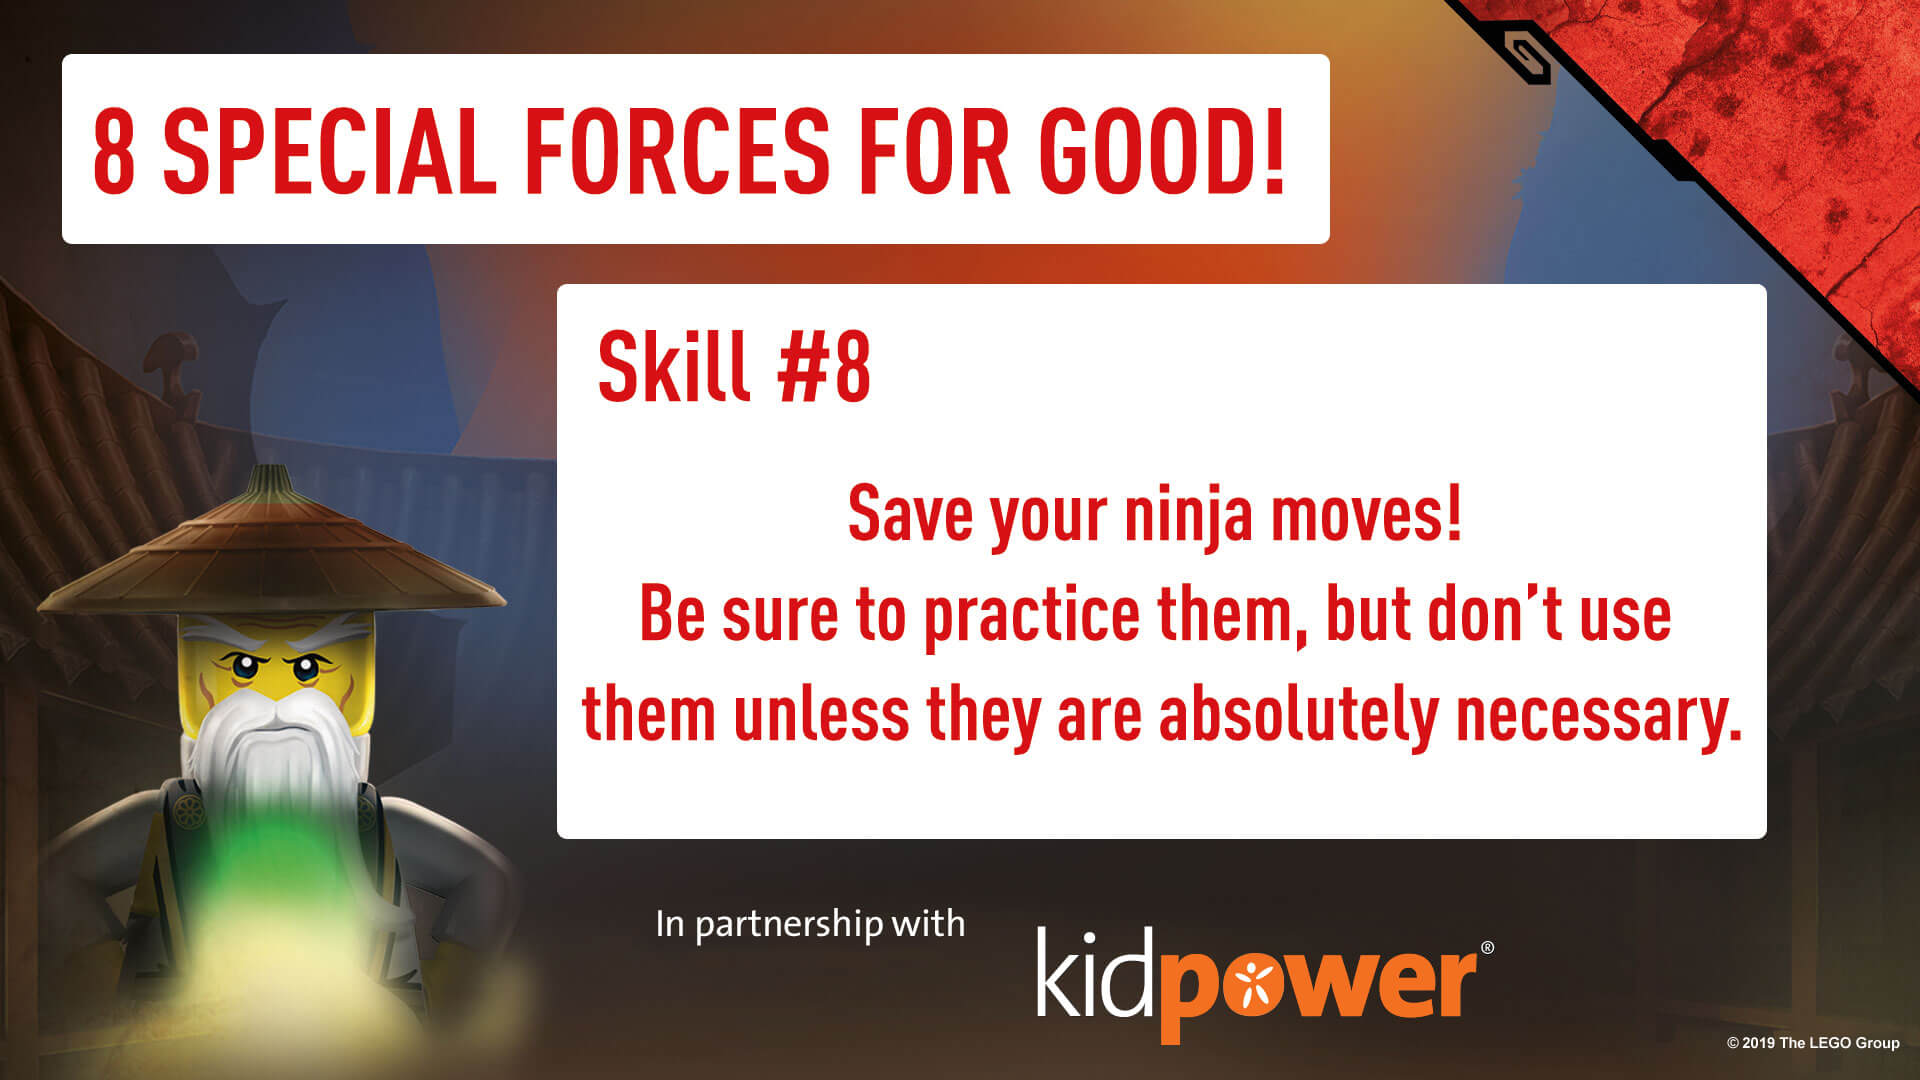 Special Forces For Good - Skill #8 - NINJAGO & KIDPOWER